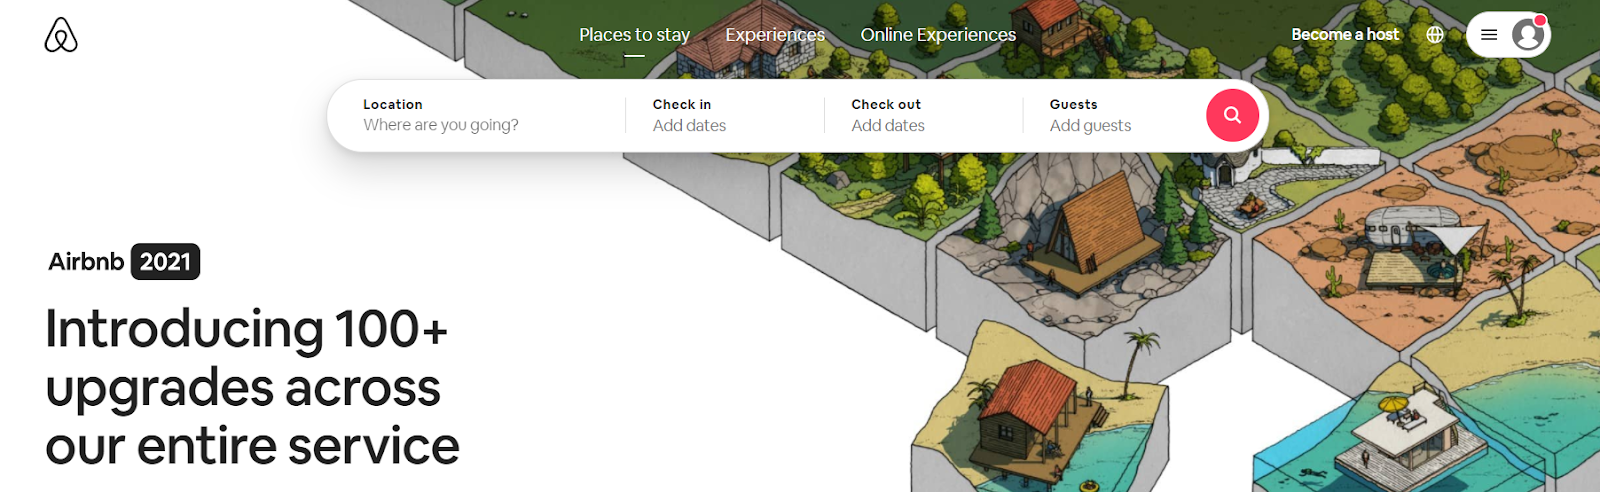 Screenshot of Airbnb - Travel Search Engine